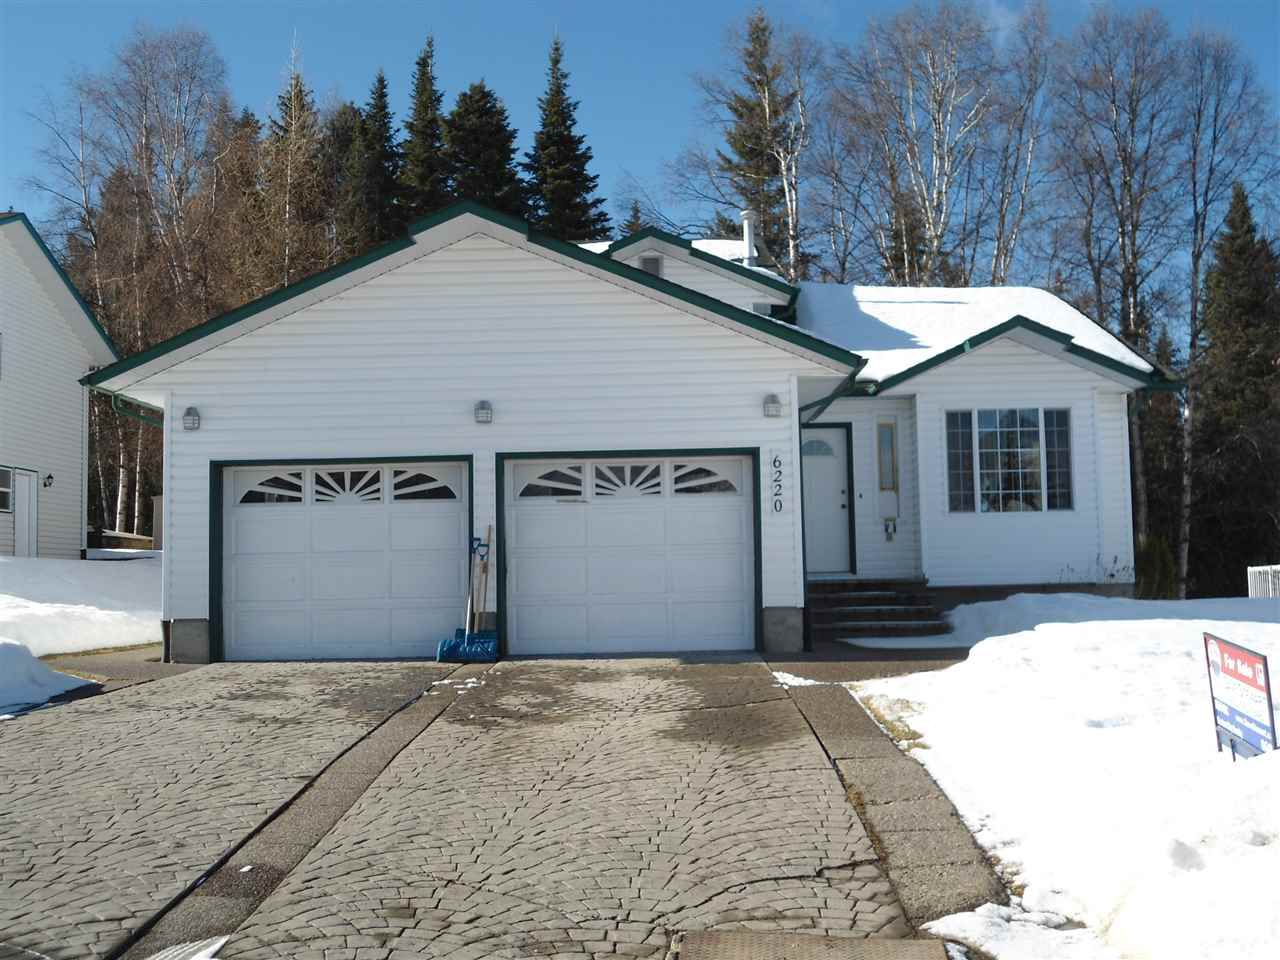 Main Photo: 6220 TASA Place in Prince George: Hart Highlands House for sale (PG City North (Zone 73))  : MLS®# R2038282